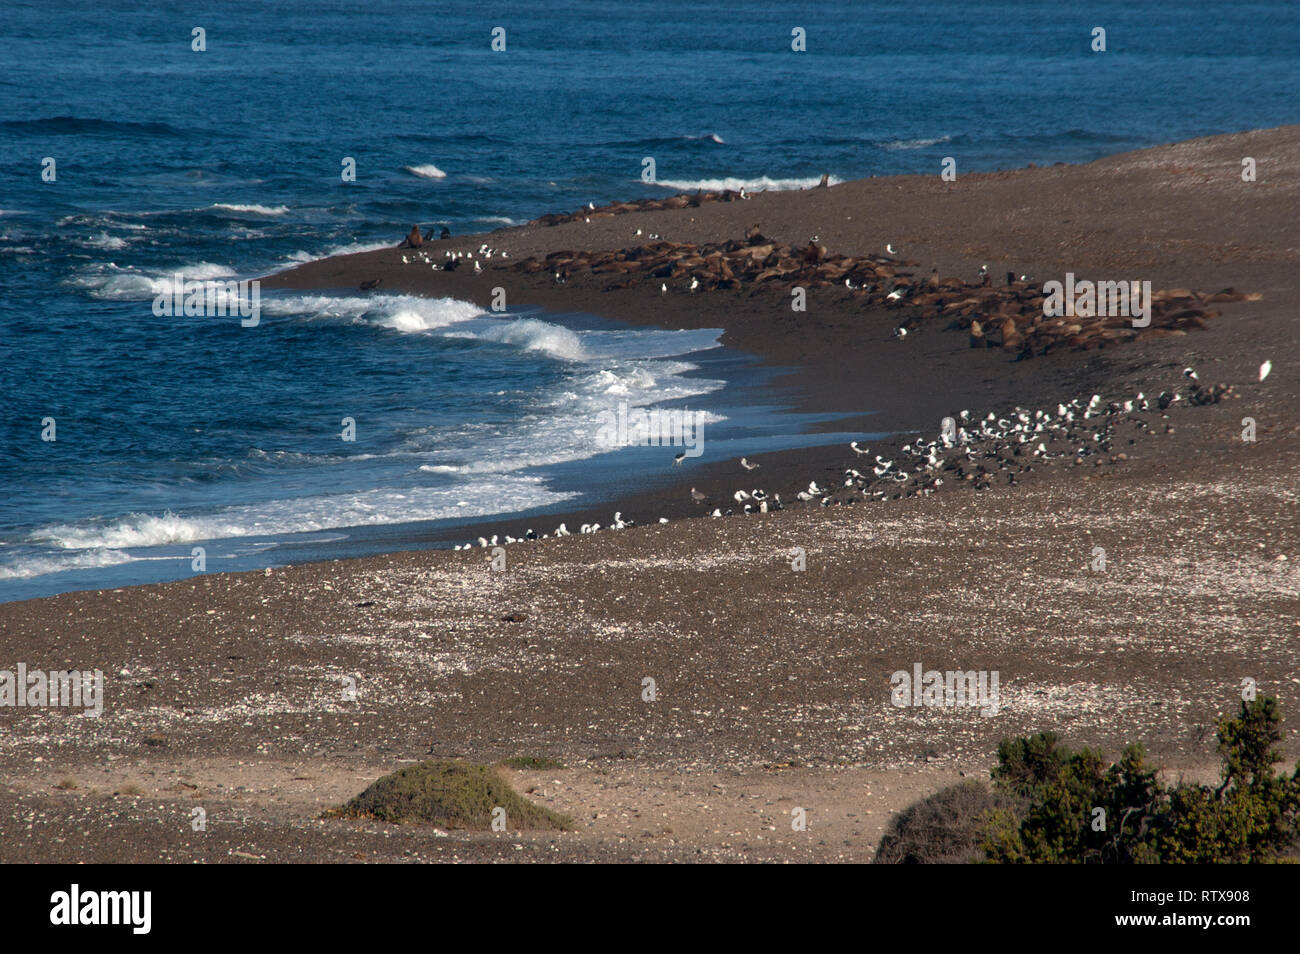 Patagonian sea lions, Otaria byronia, rest at Punta Nova beach, Valdes Peninsula, Chubut, Patagonia Argentina Stock Photo